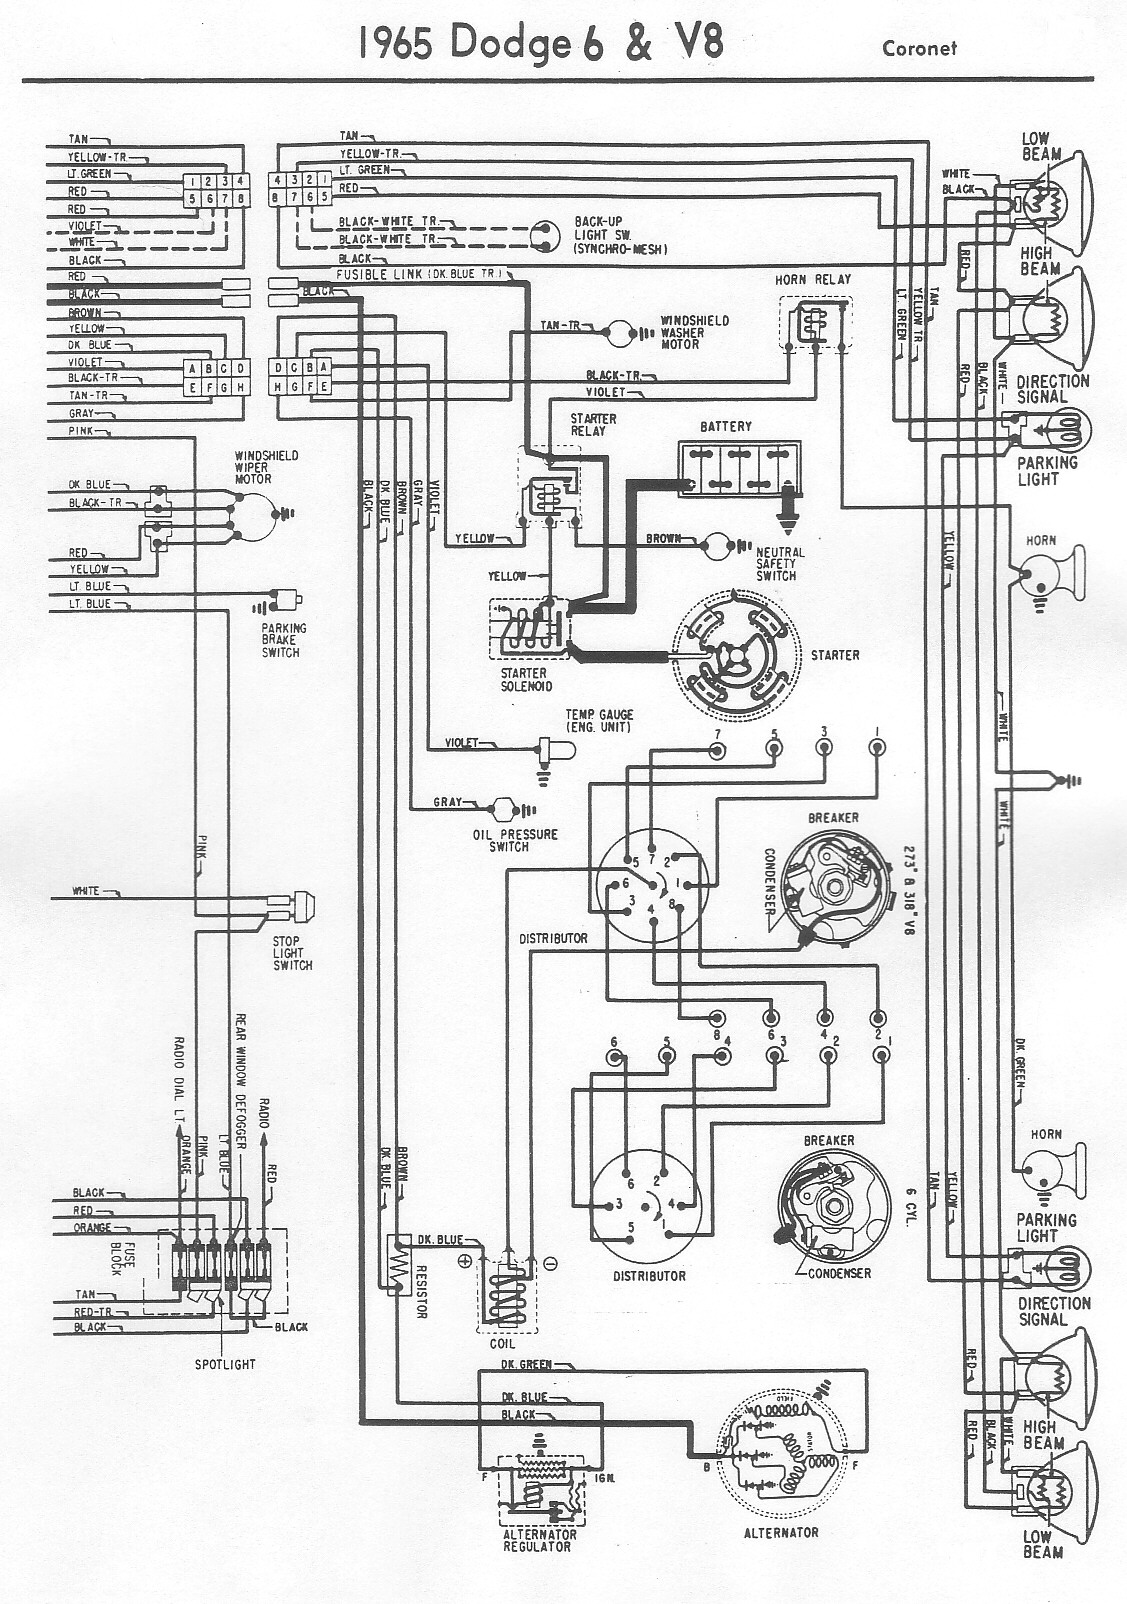 [DIAGRAM_38YU]  1966 Dodge Coronet Wiring Diagram Diagram Base Website Wiring Diagram -  BATVENNDIAGRAM.FONDAZIONEDONNAREGINA.IT | 1966 Chrysler 440 Wiring Diagram |  | Diagram Base Website Full Edition - fondazionedonnaregina.it